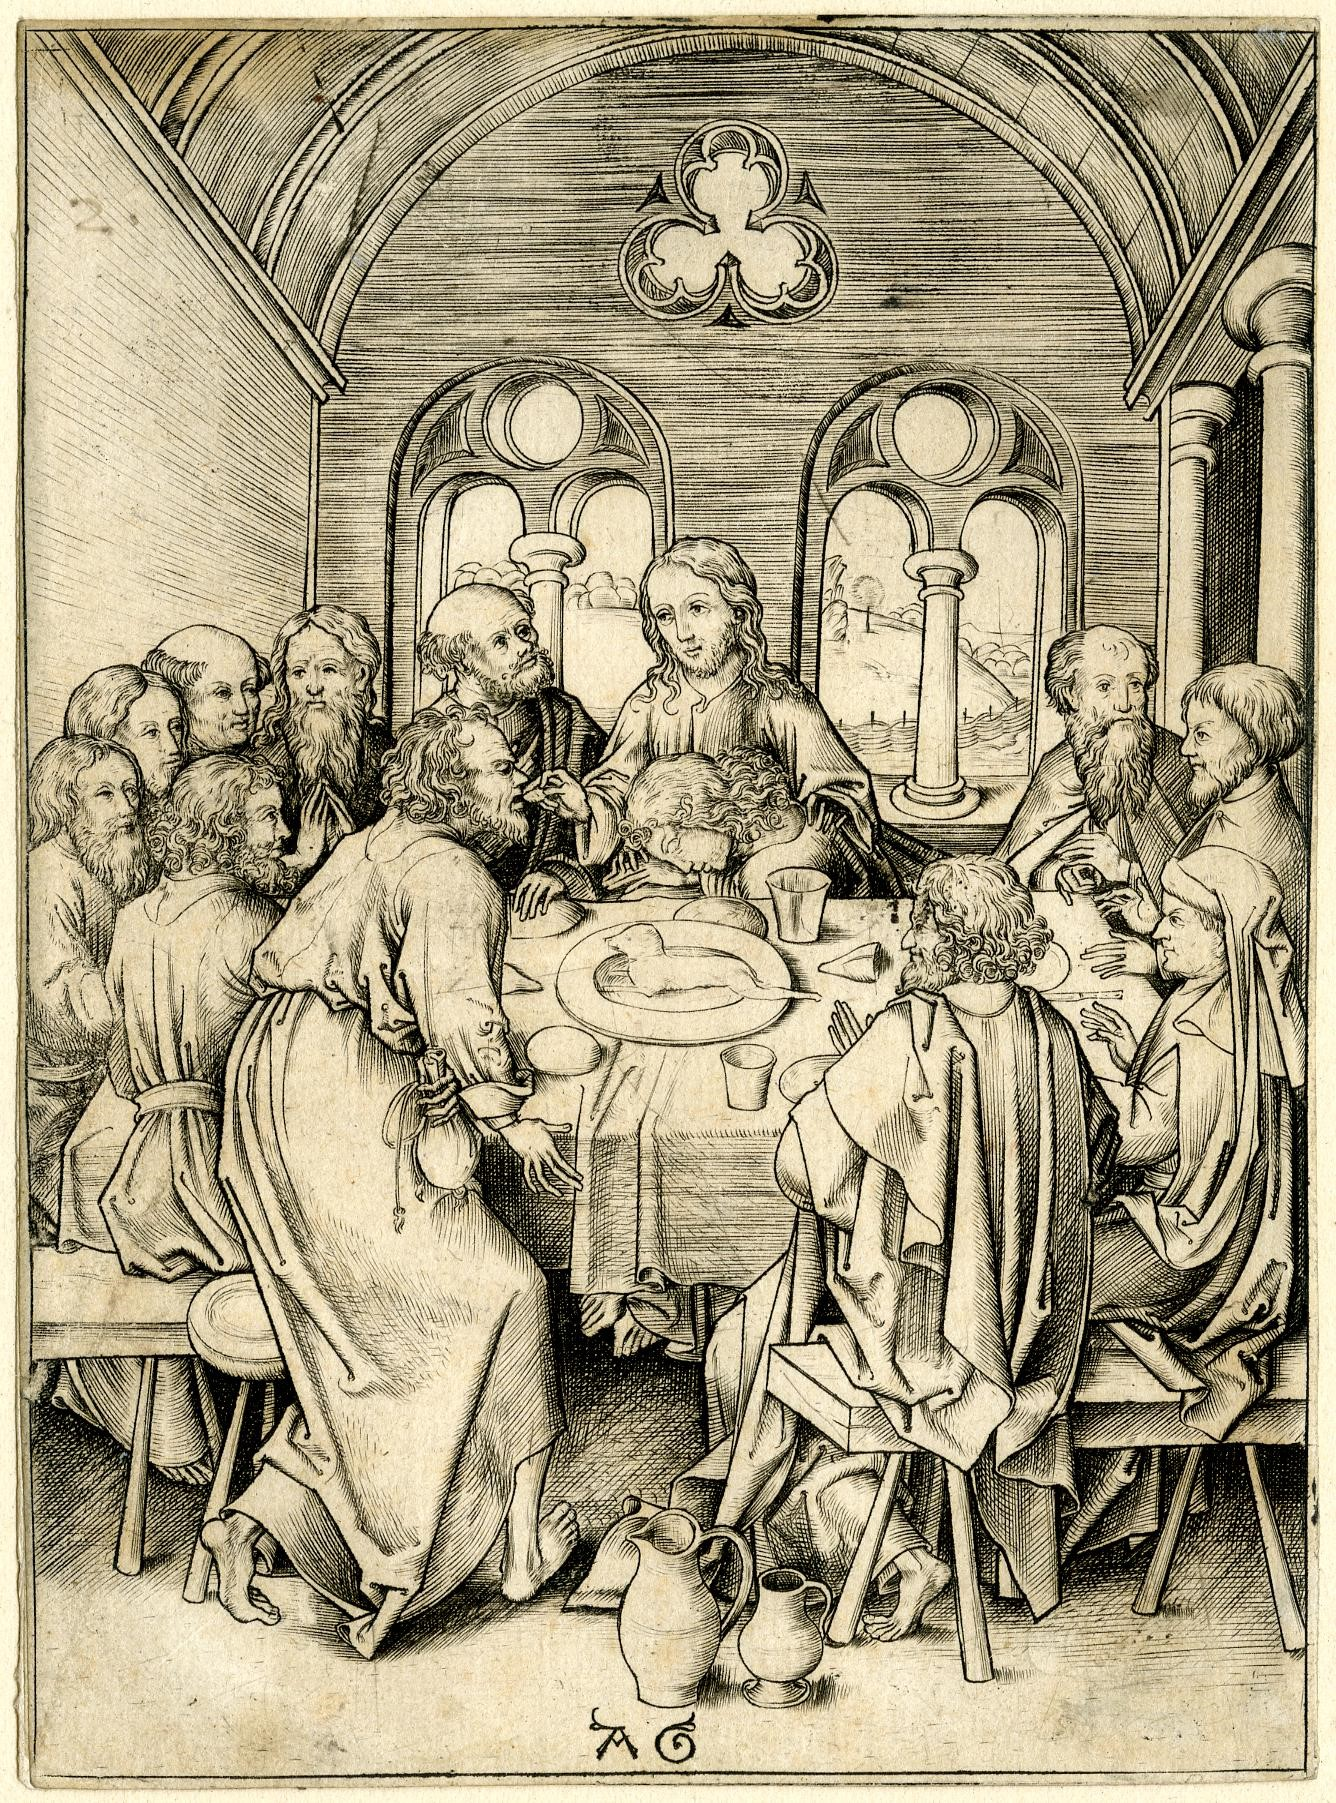 Engraving representing Christ and his disciples seated at a rectangular table. Judas is standing and bends slightly over the table. Through two windows in the back, the outer landscape is seen.